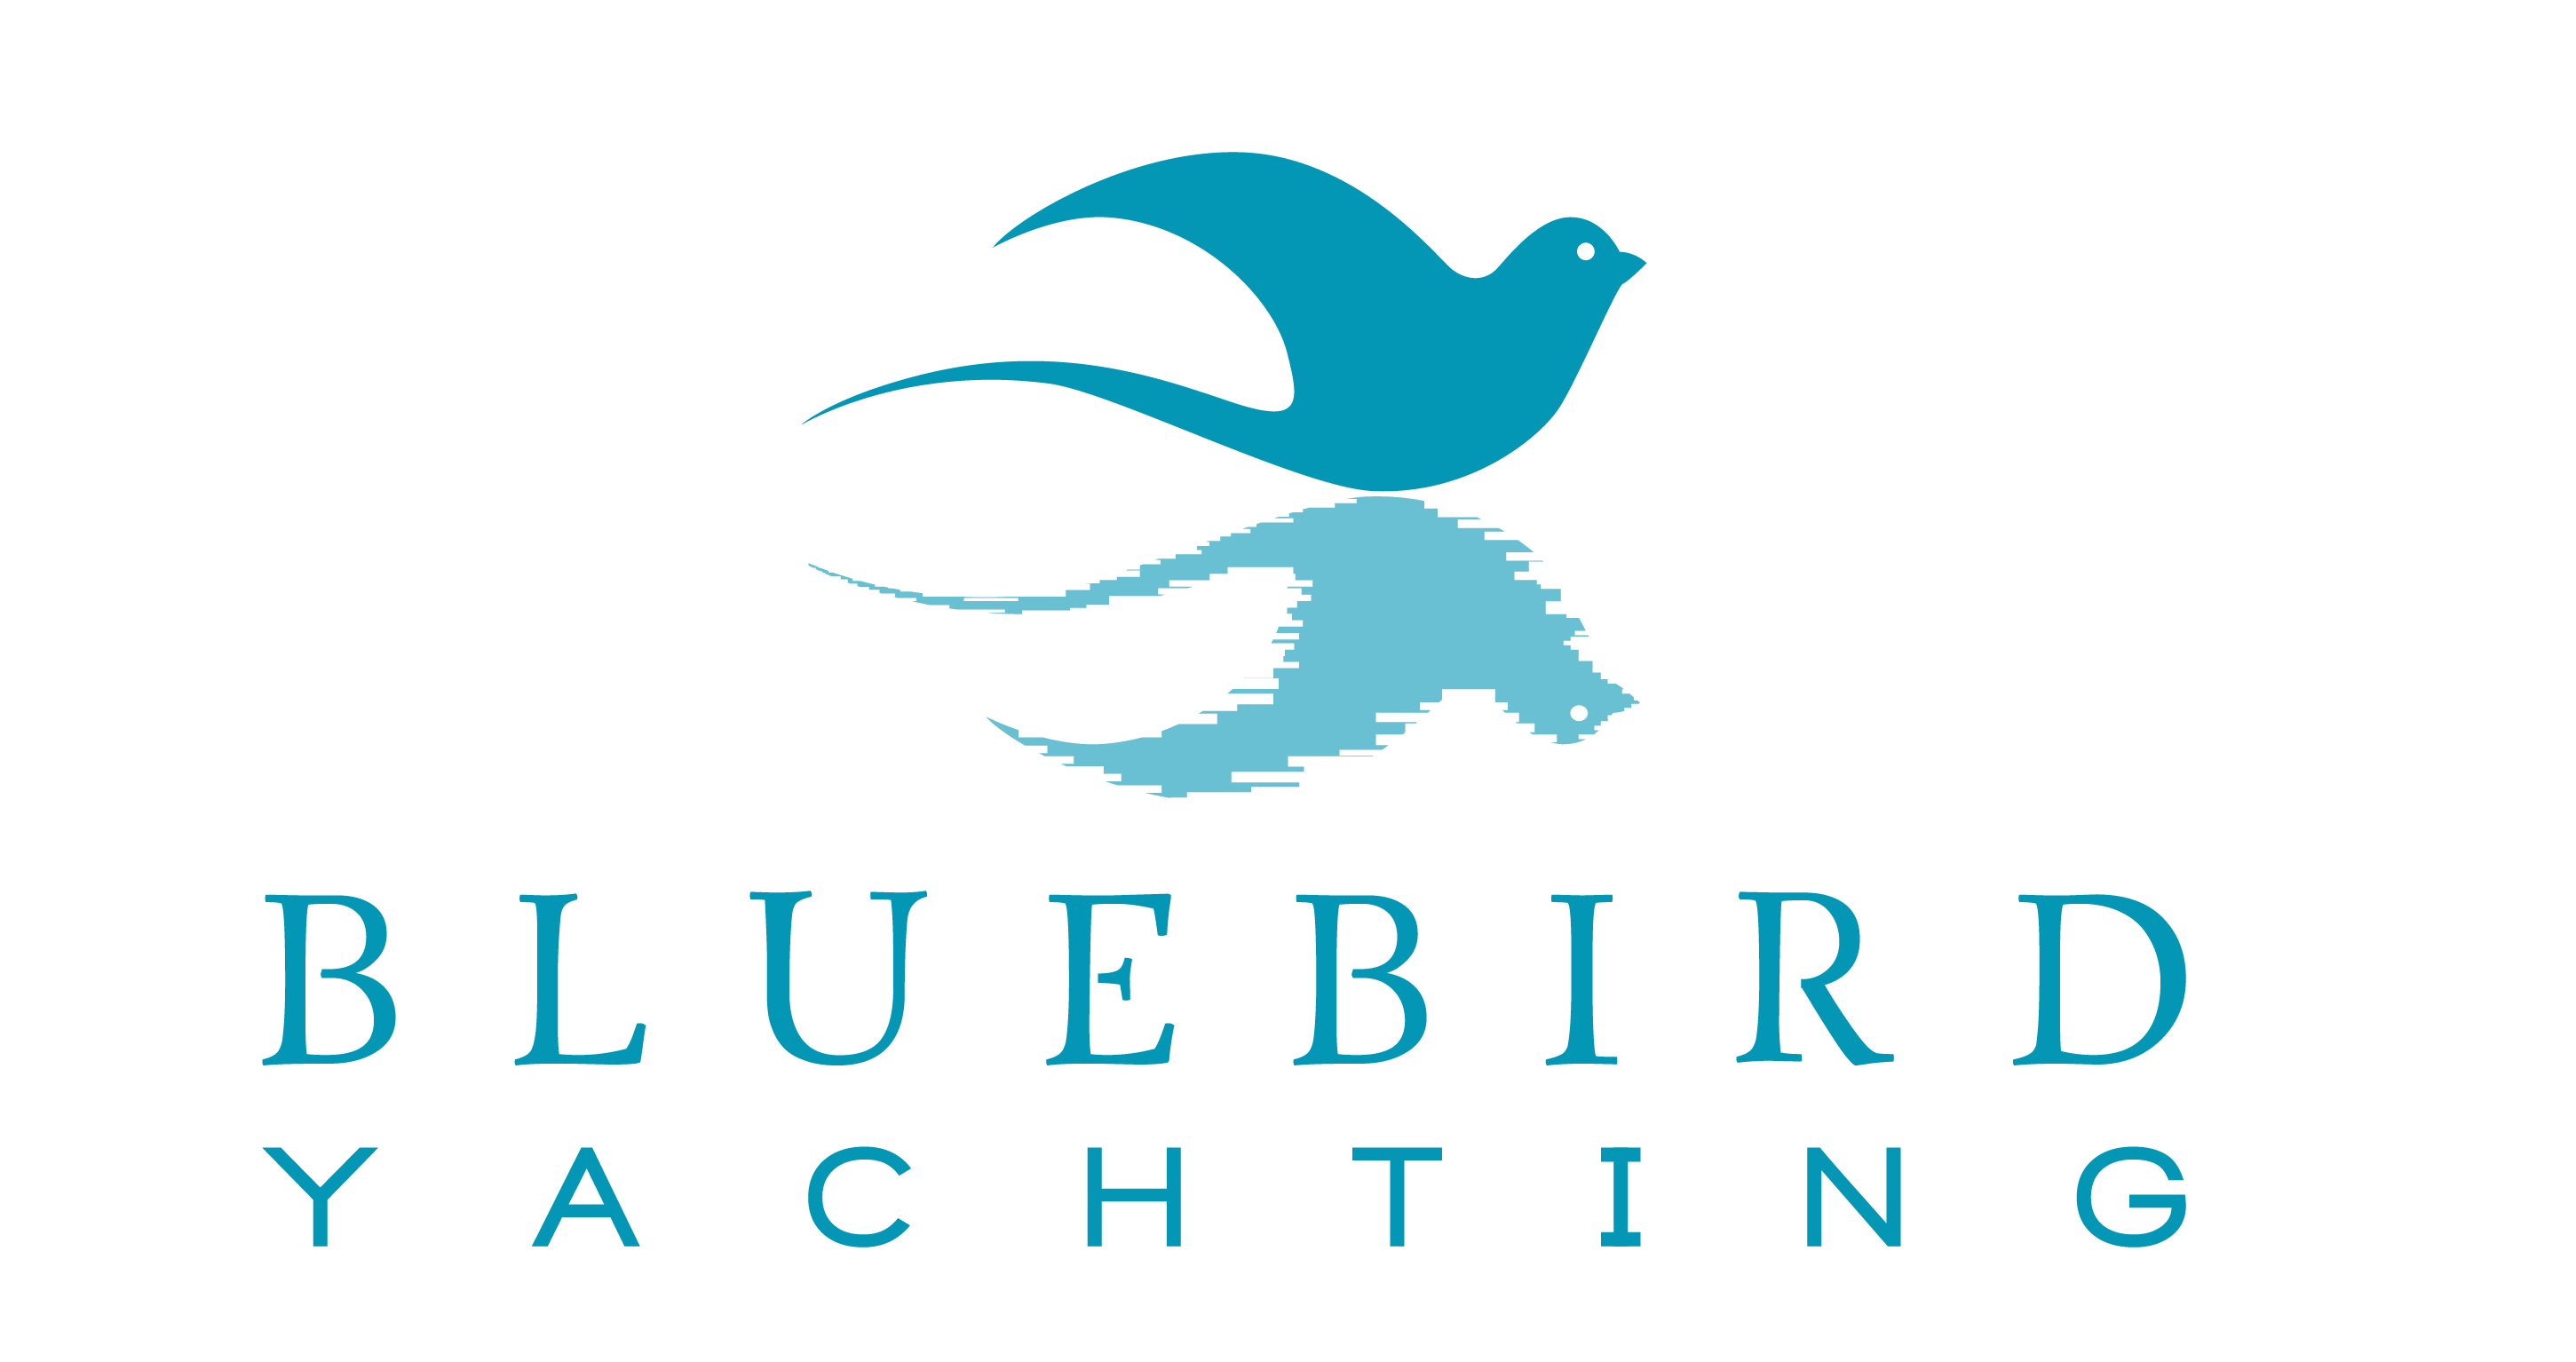 Bluebird Yachting | Bluebird Yachting   General conditions